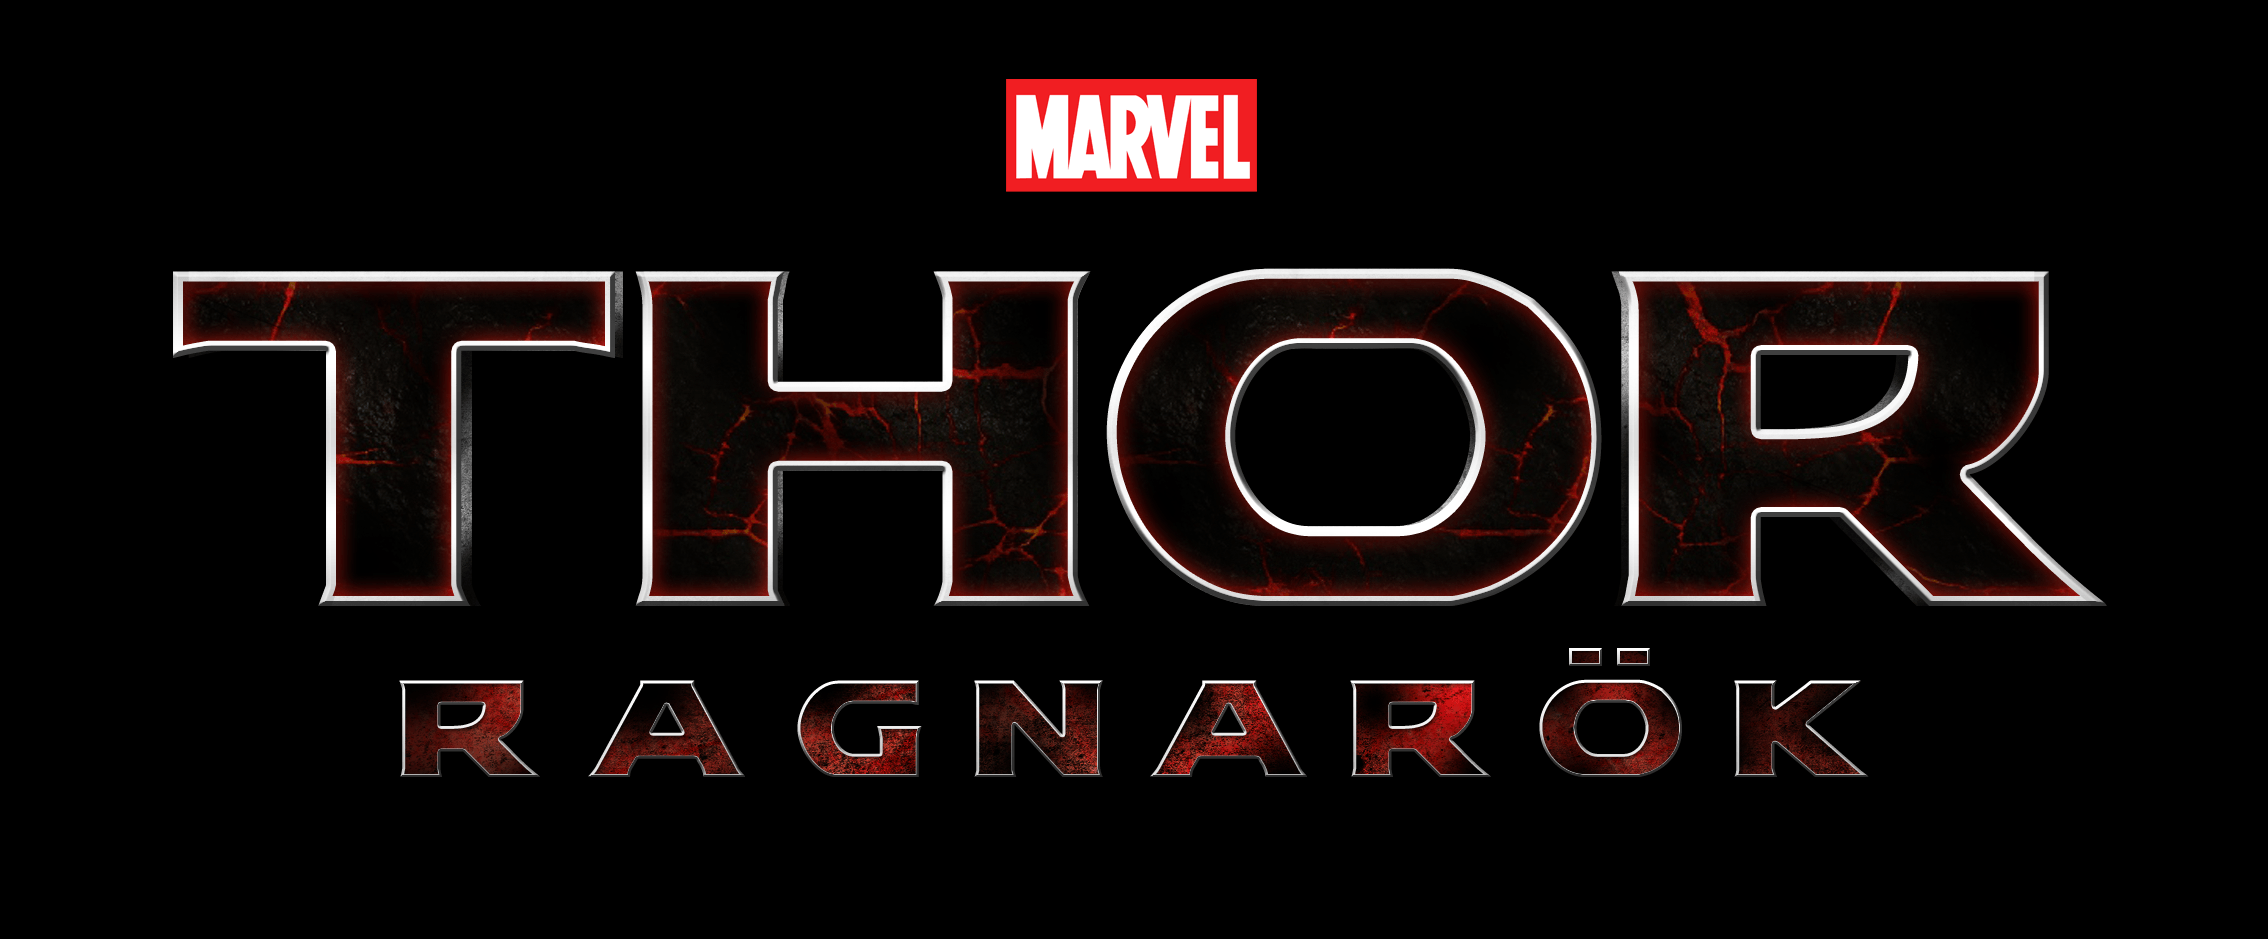 Thor: Ragnarok HD wallpapers free download